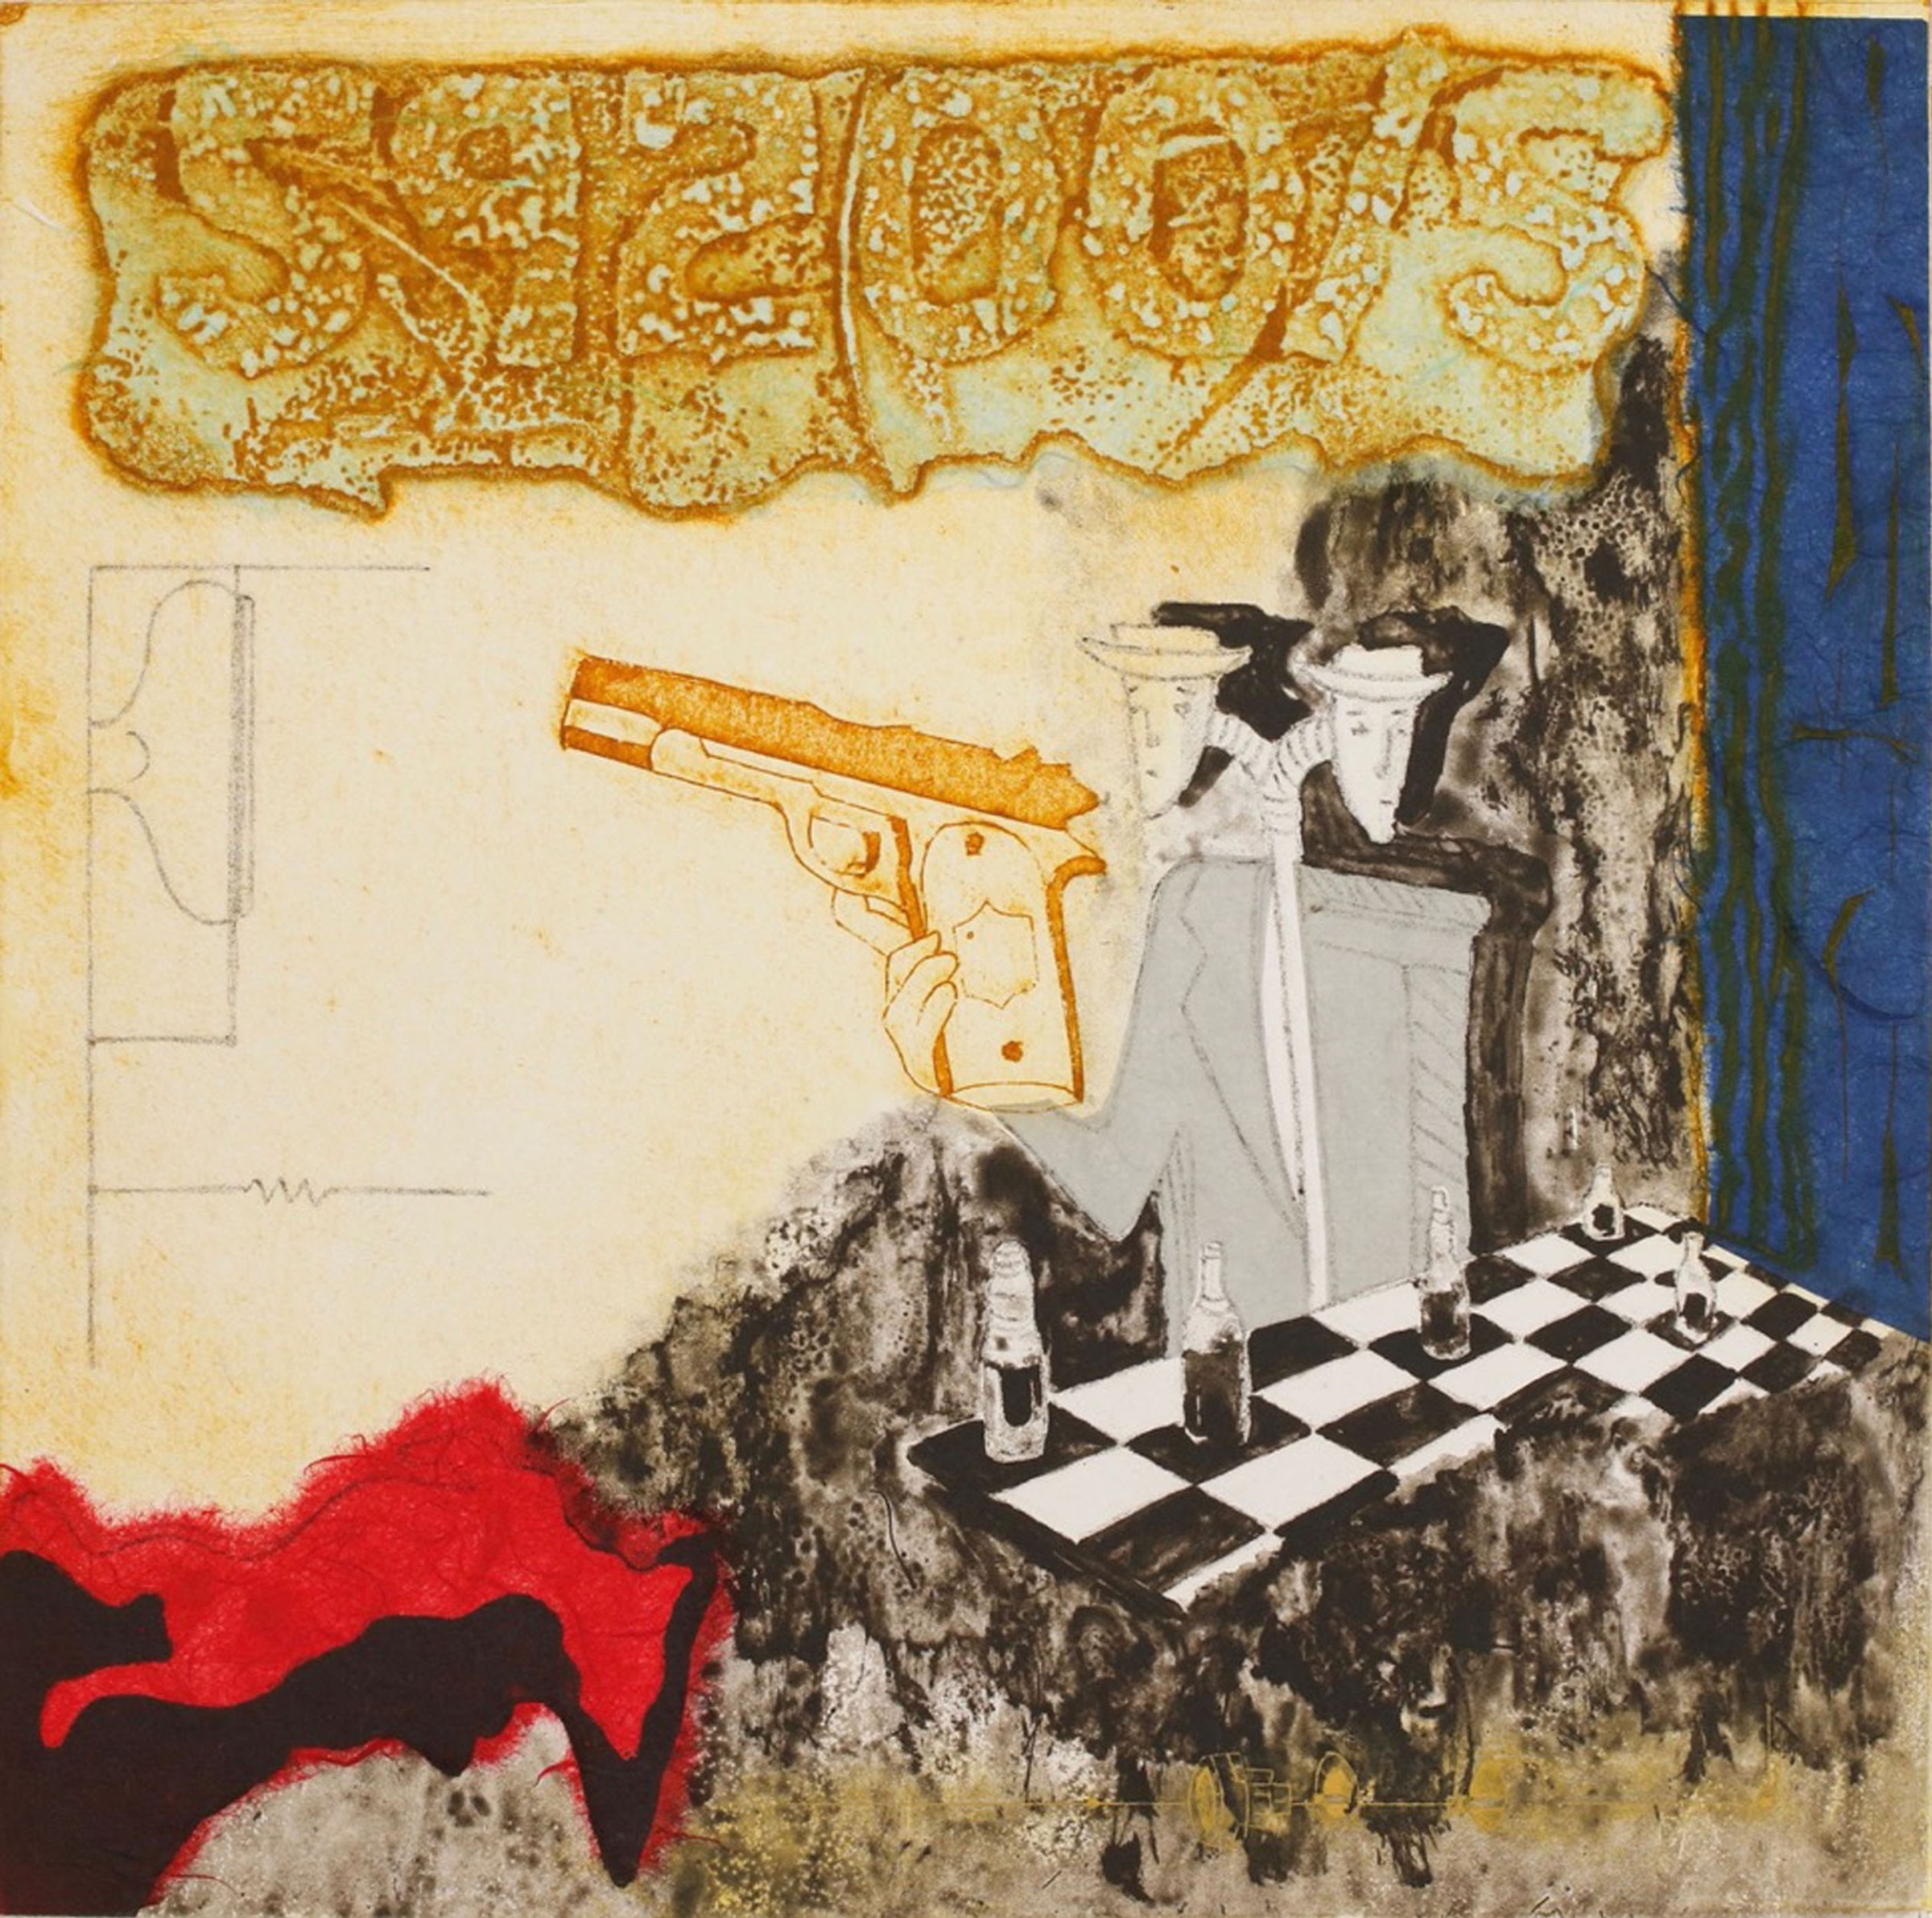 """<span class=""""link fancybox-details-link""""><a href=""""/exhibitions/17/works/image_standalone697/"""">View Detail Page</a></span><p><strong>Bernie Grist</strong></p><p>The Spy</p><p>collagraph / polymer gravure with chine collee, ed of 10</p><p>45 x 45cm</p><p>£300 framed</p><p>£260 unframed</p>"""